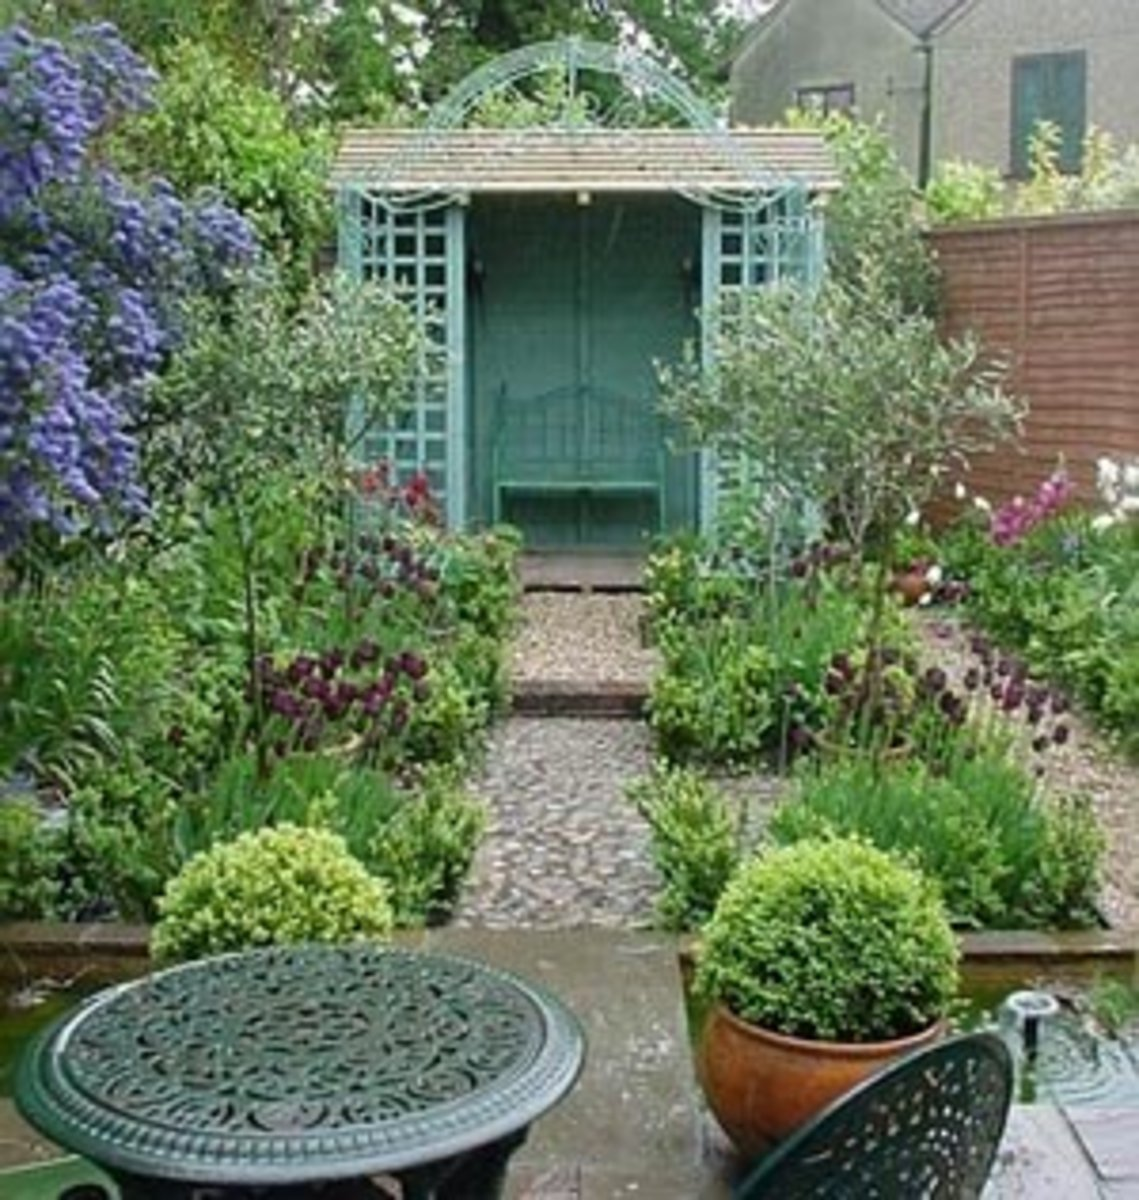 teal aqua potting shed with lush gardens